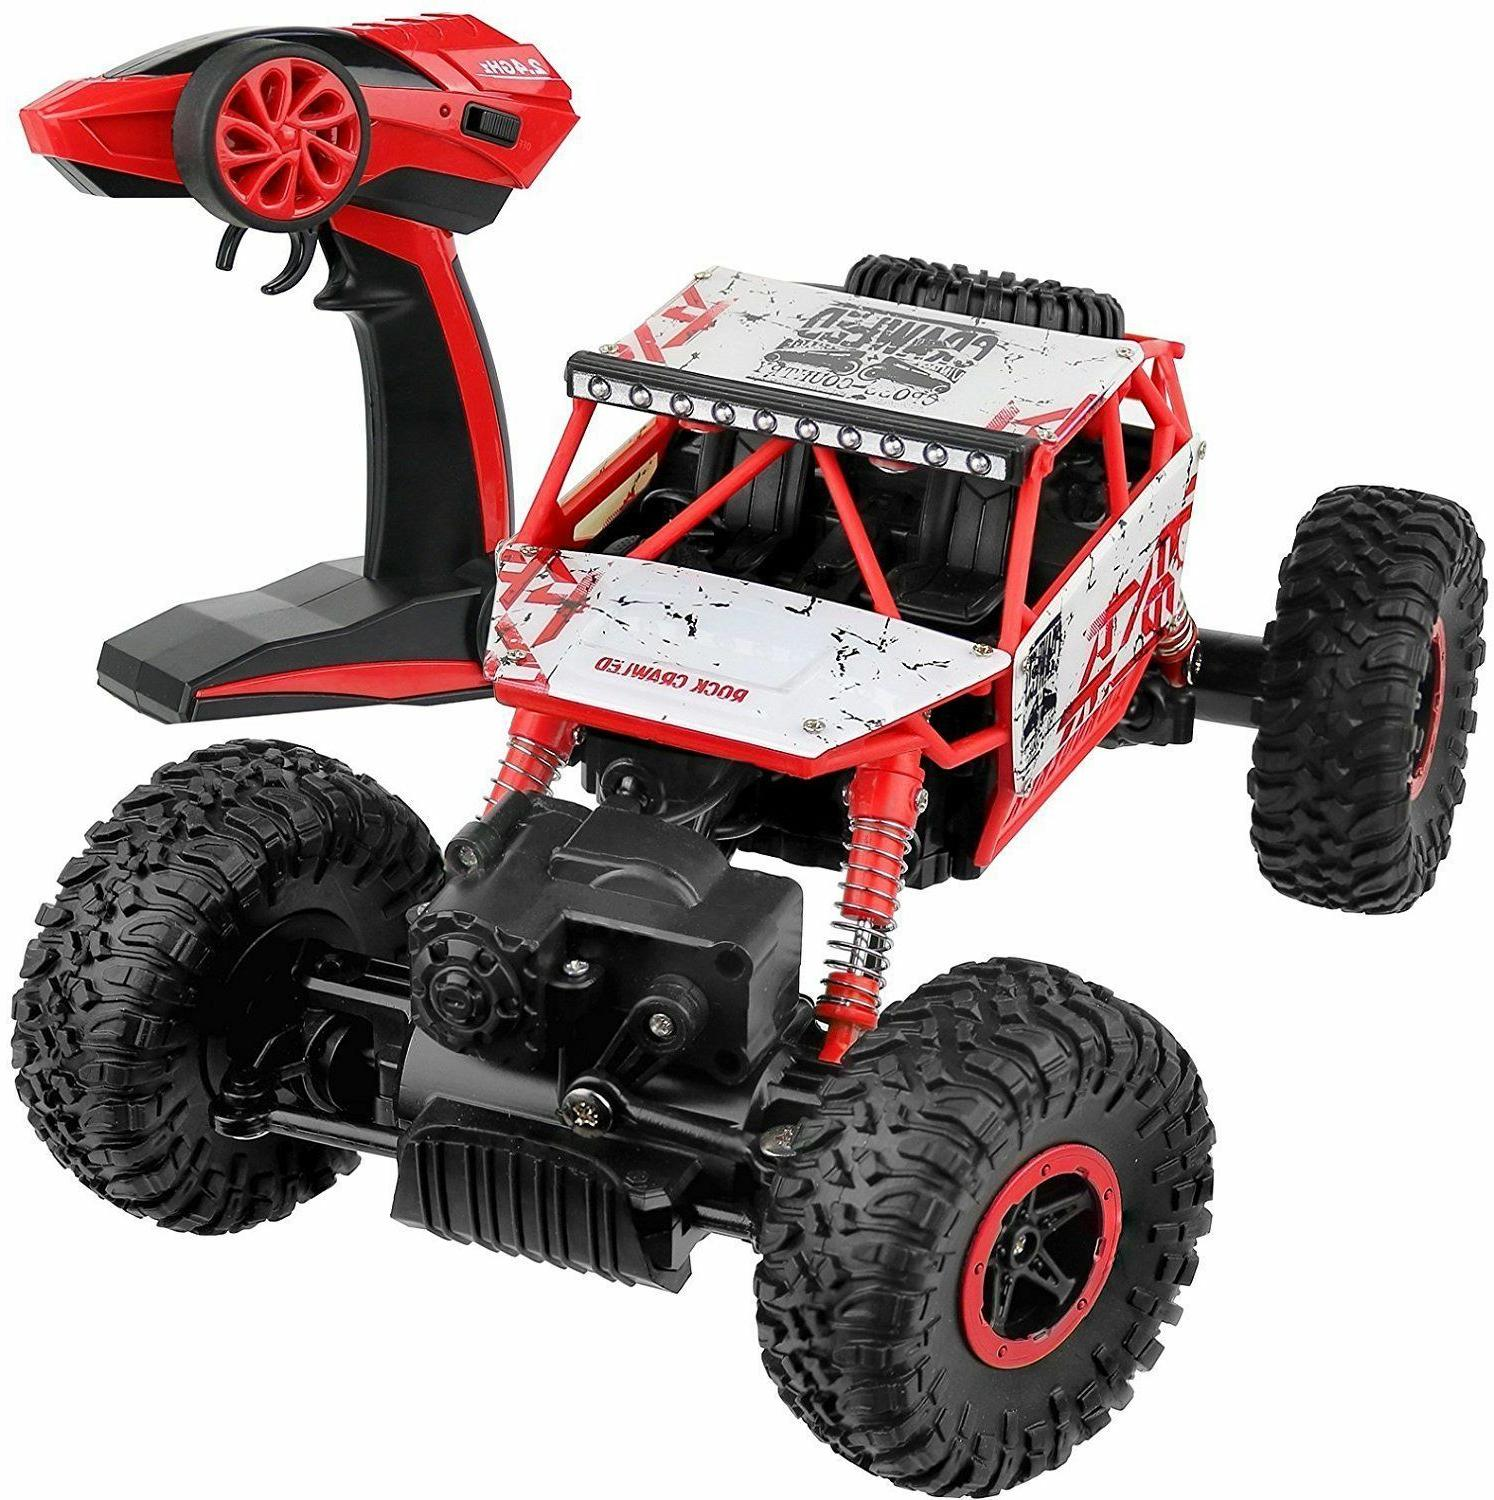 nwob rock crawler rc car red vehicle